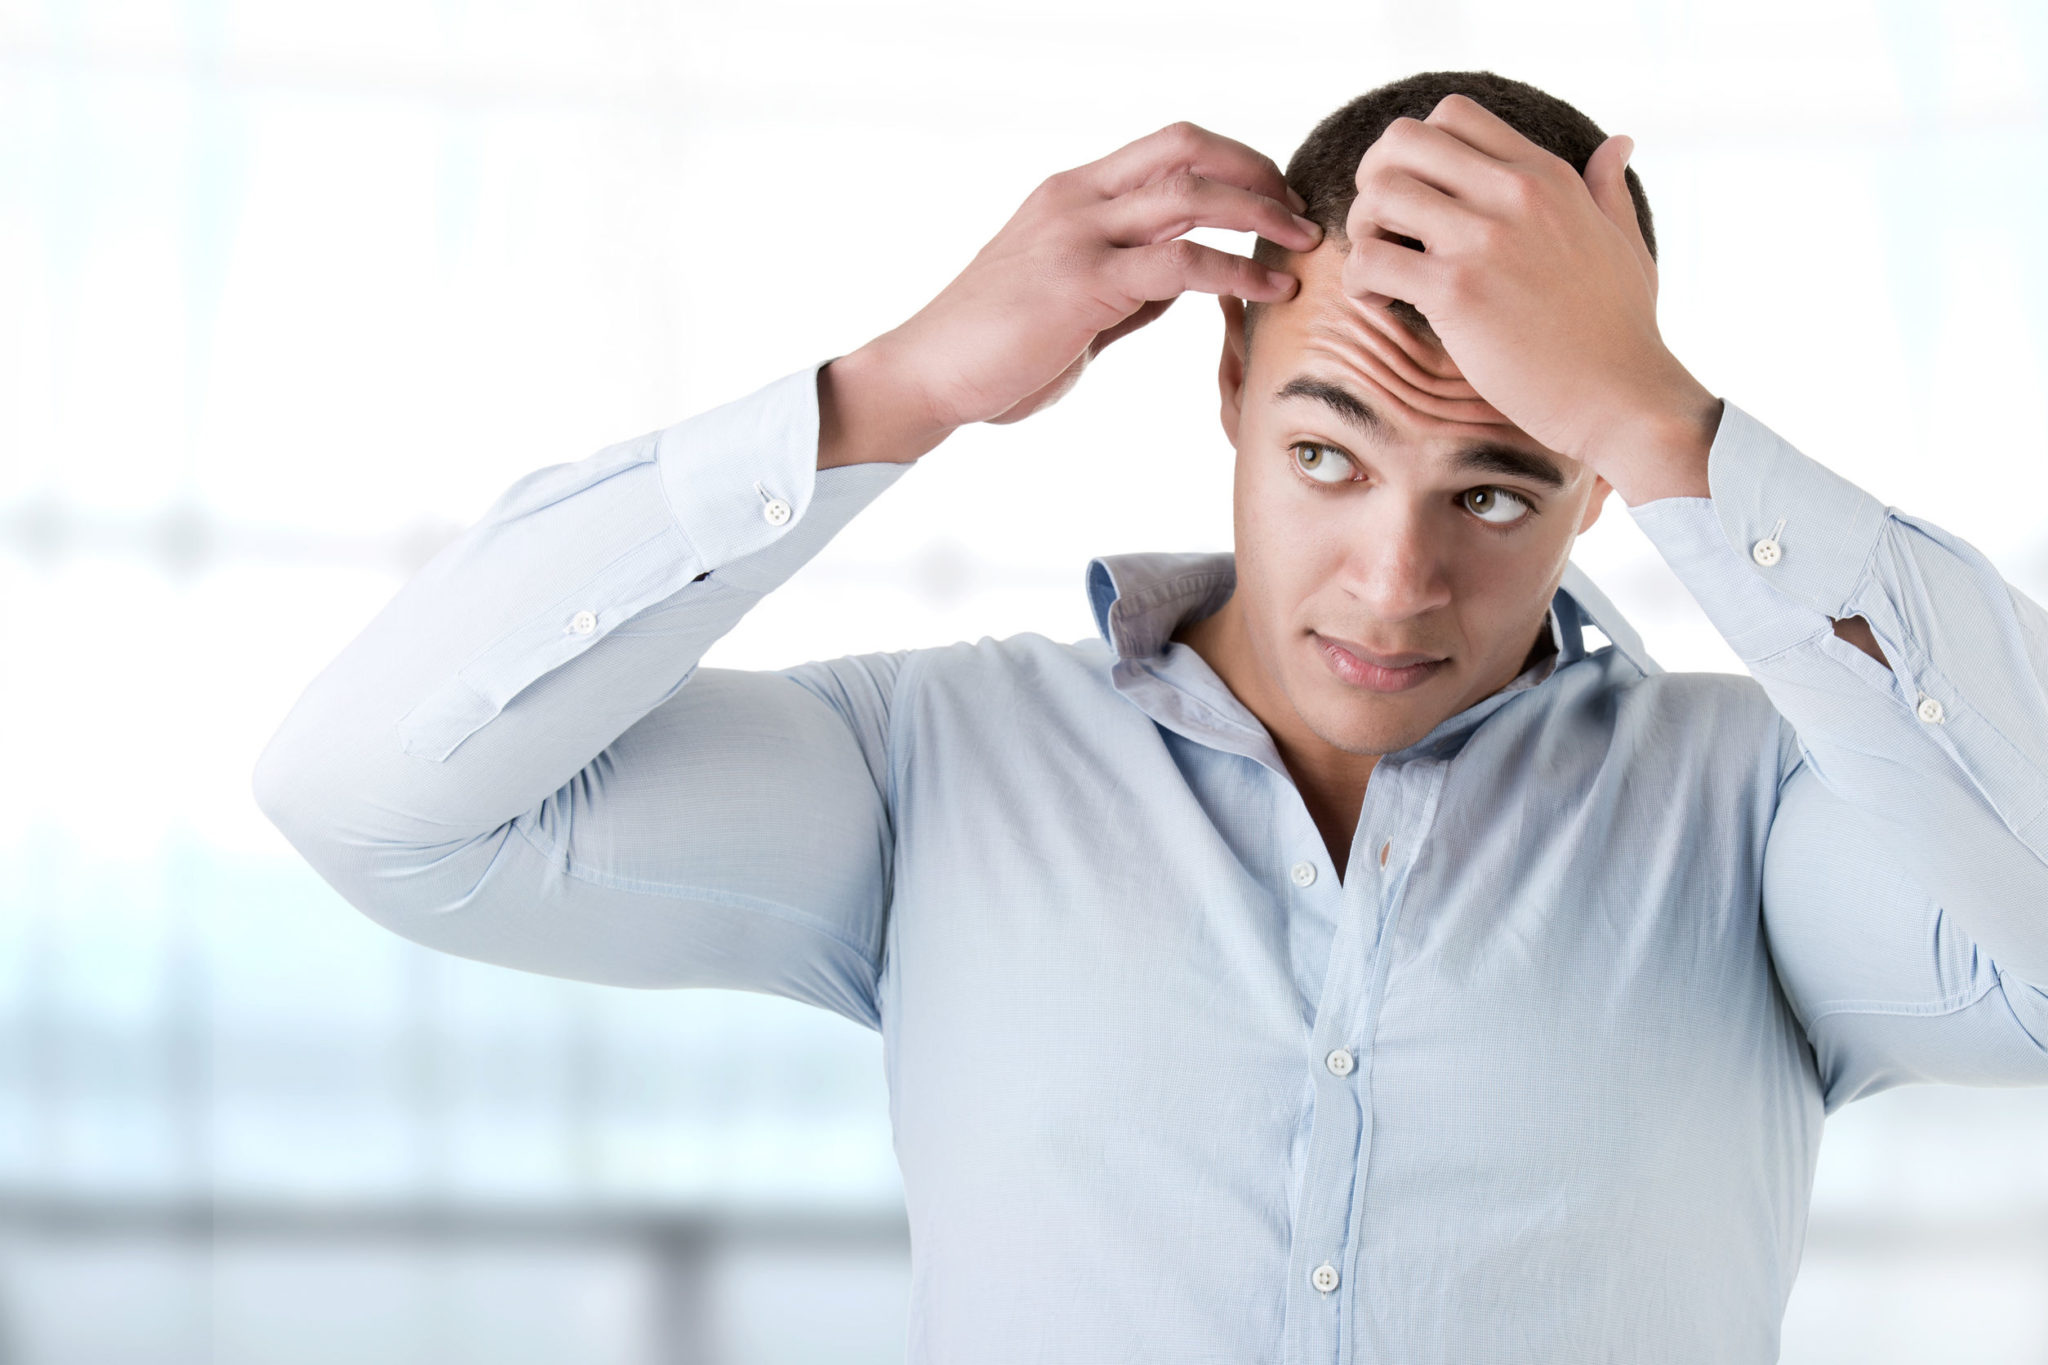 Is It Better to Have Hair Transplant Surgery As Soon As Hair Loss Begins